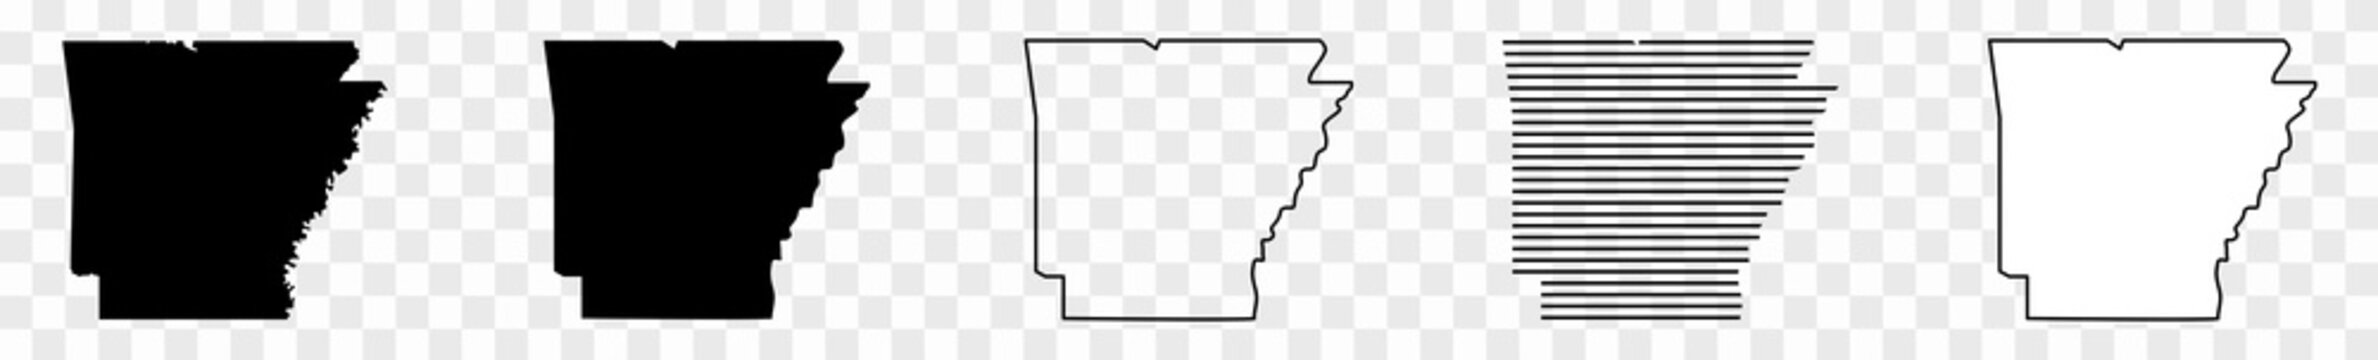 Arkansas Map Black | State Border | United States | US America | Transparent Isolated | Variations